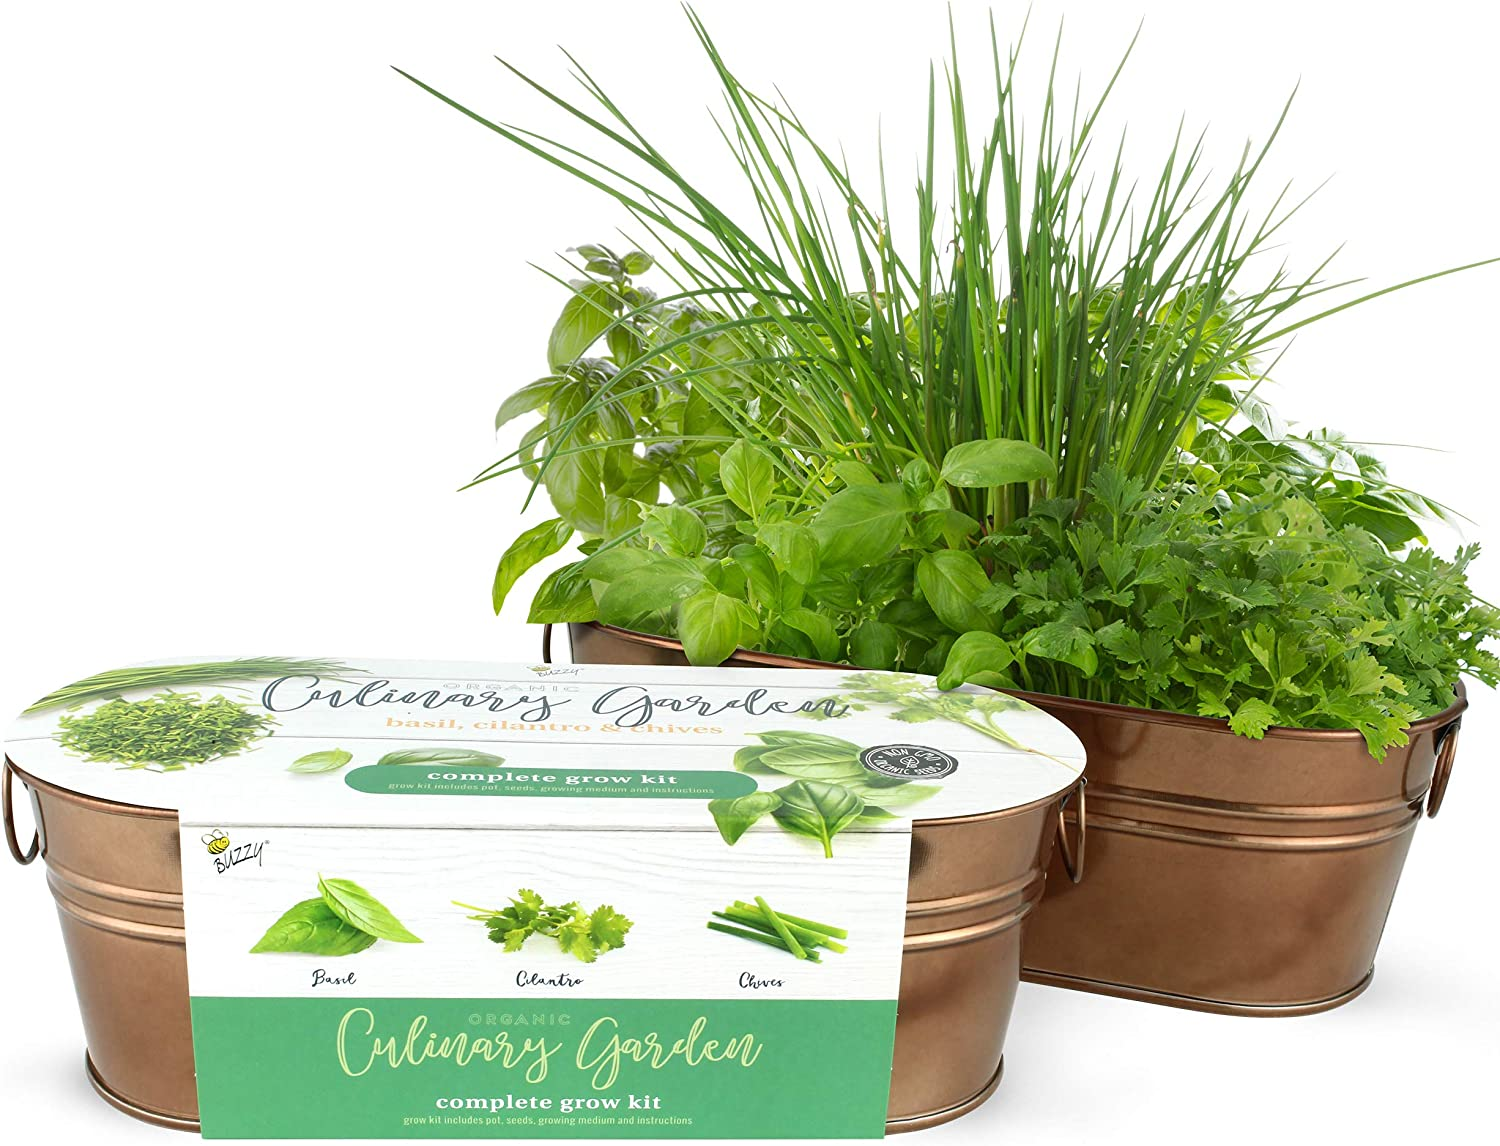 BUZZY Organic Windowsill Grow Kit   Copper Culinary Garden: Basil, Cilantro, and Chives   Best Gardening Gifts, Favors, Parties, Events, Unique, and Fun   Growth Guaranteed